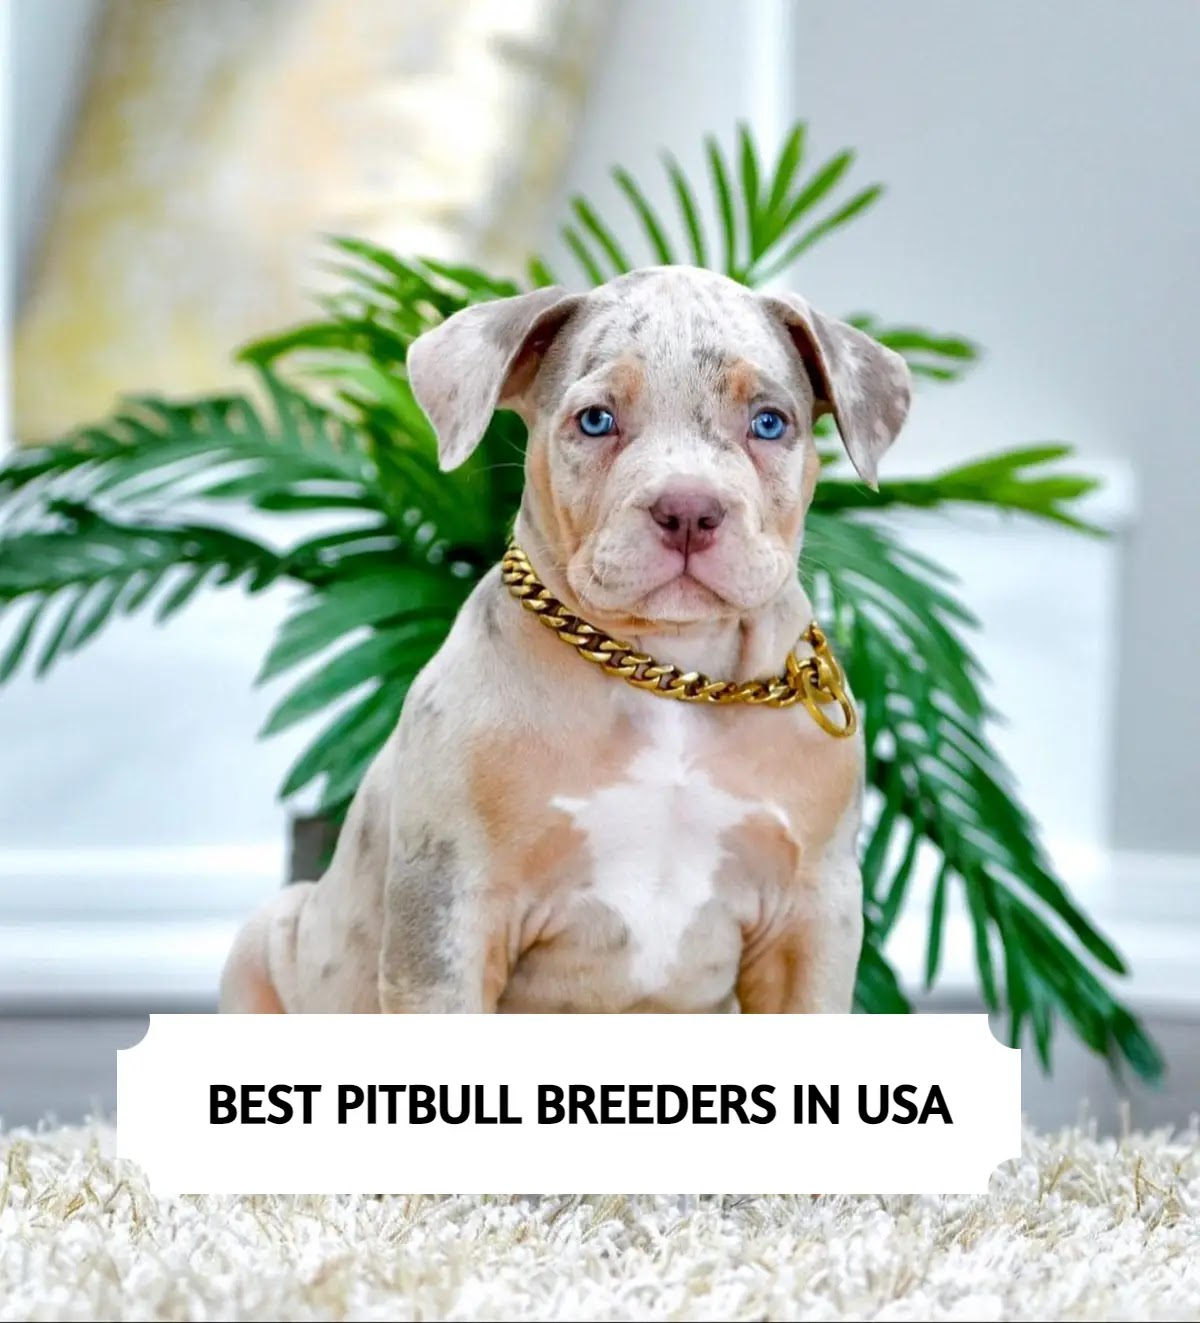 Best Pitbull Breeders in the USA